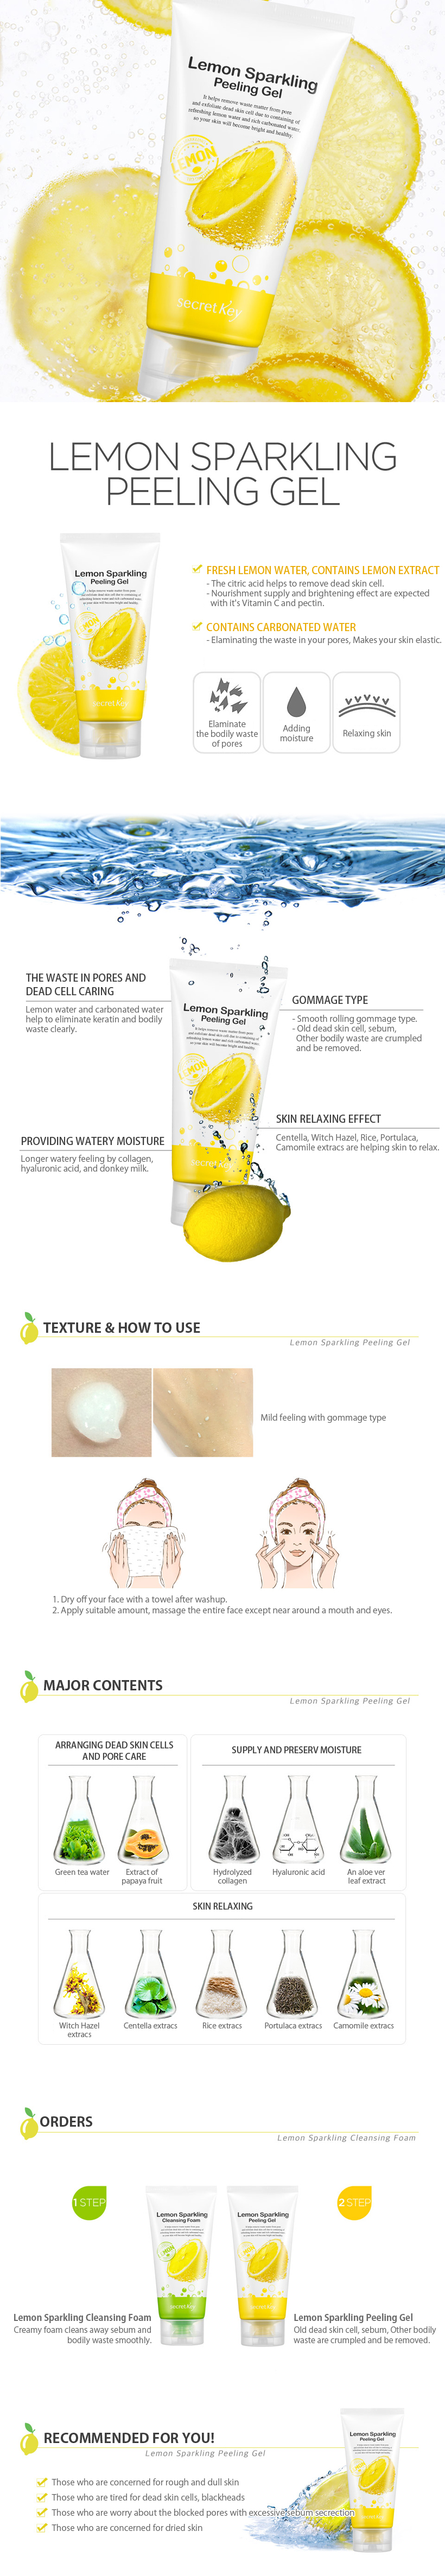 Image result for secret key lemon sparkling peeling gel